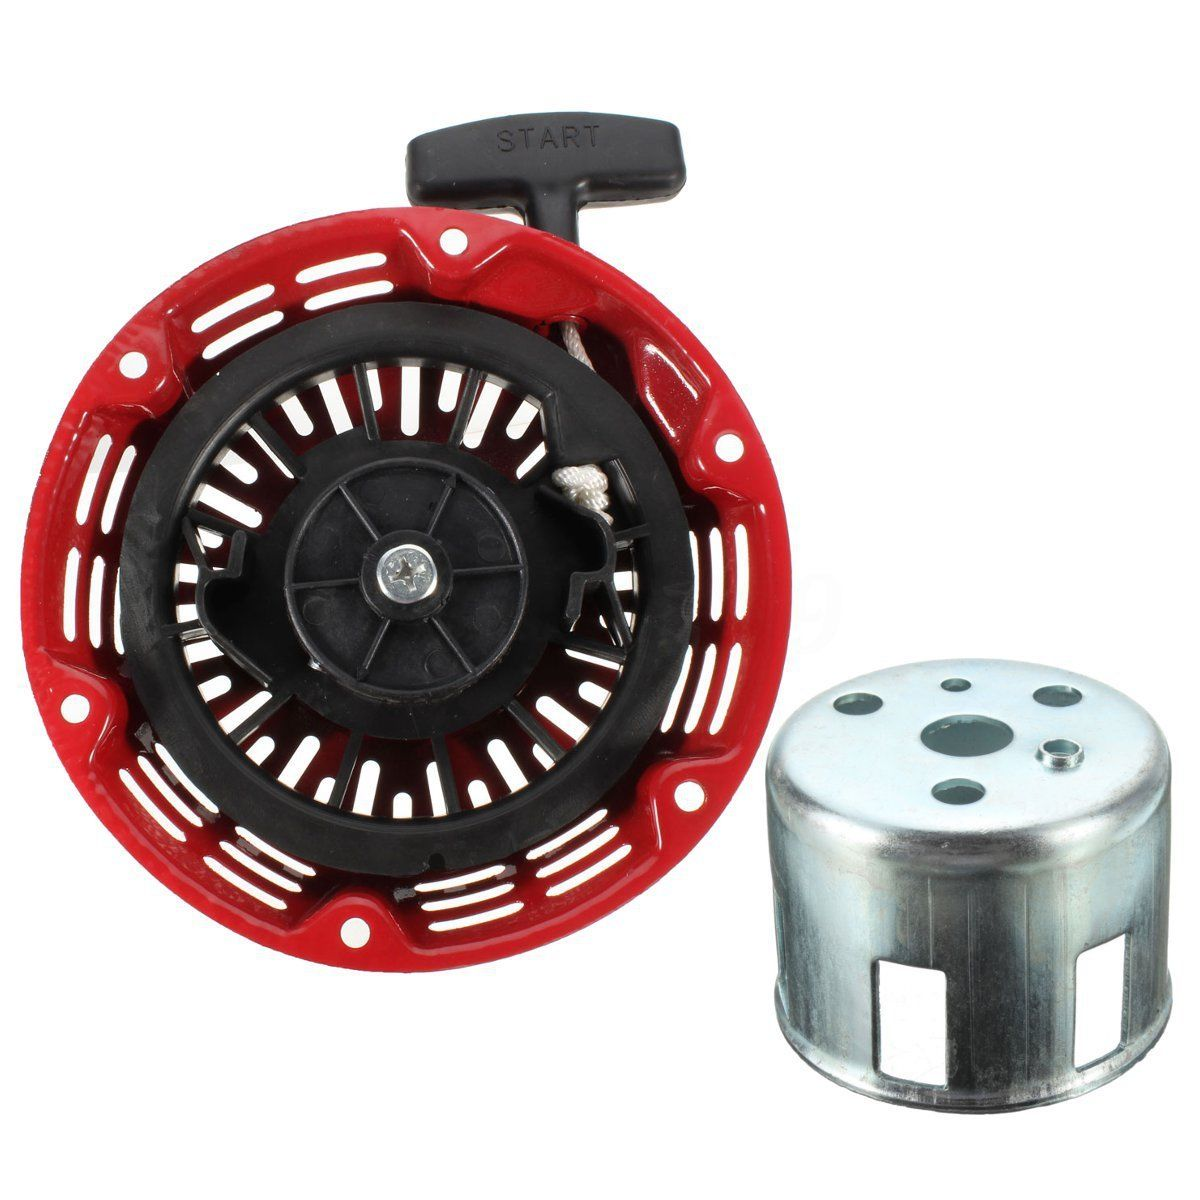 Recoil <font><b>Starter</b></font> Start Repair Part Fits <font><b>Honda</b></font> GX120 <font><b>GX160</b></font> GX200 Chinese 5.5HP Generator Engine Pull <font><b>Starter</b></font> image